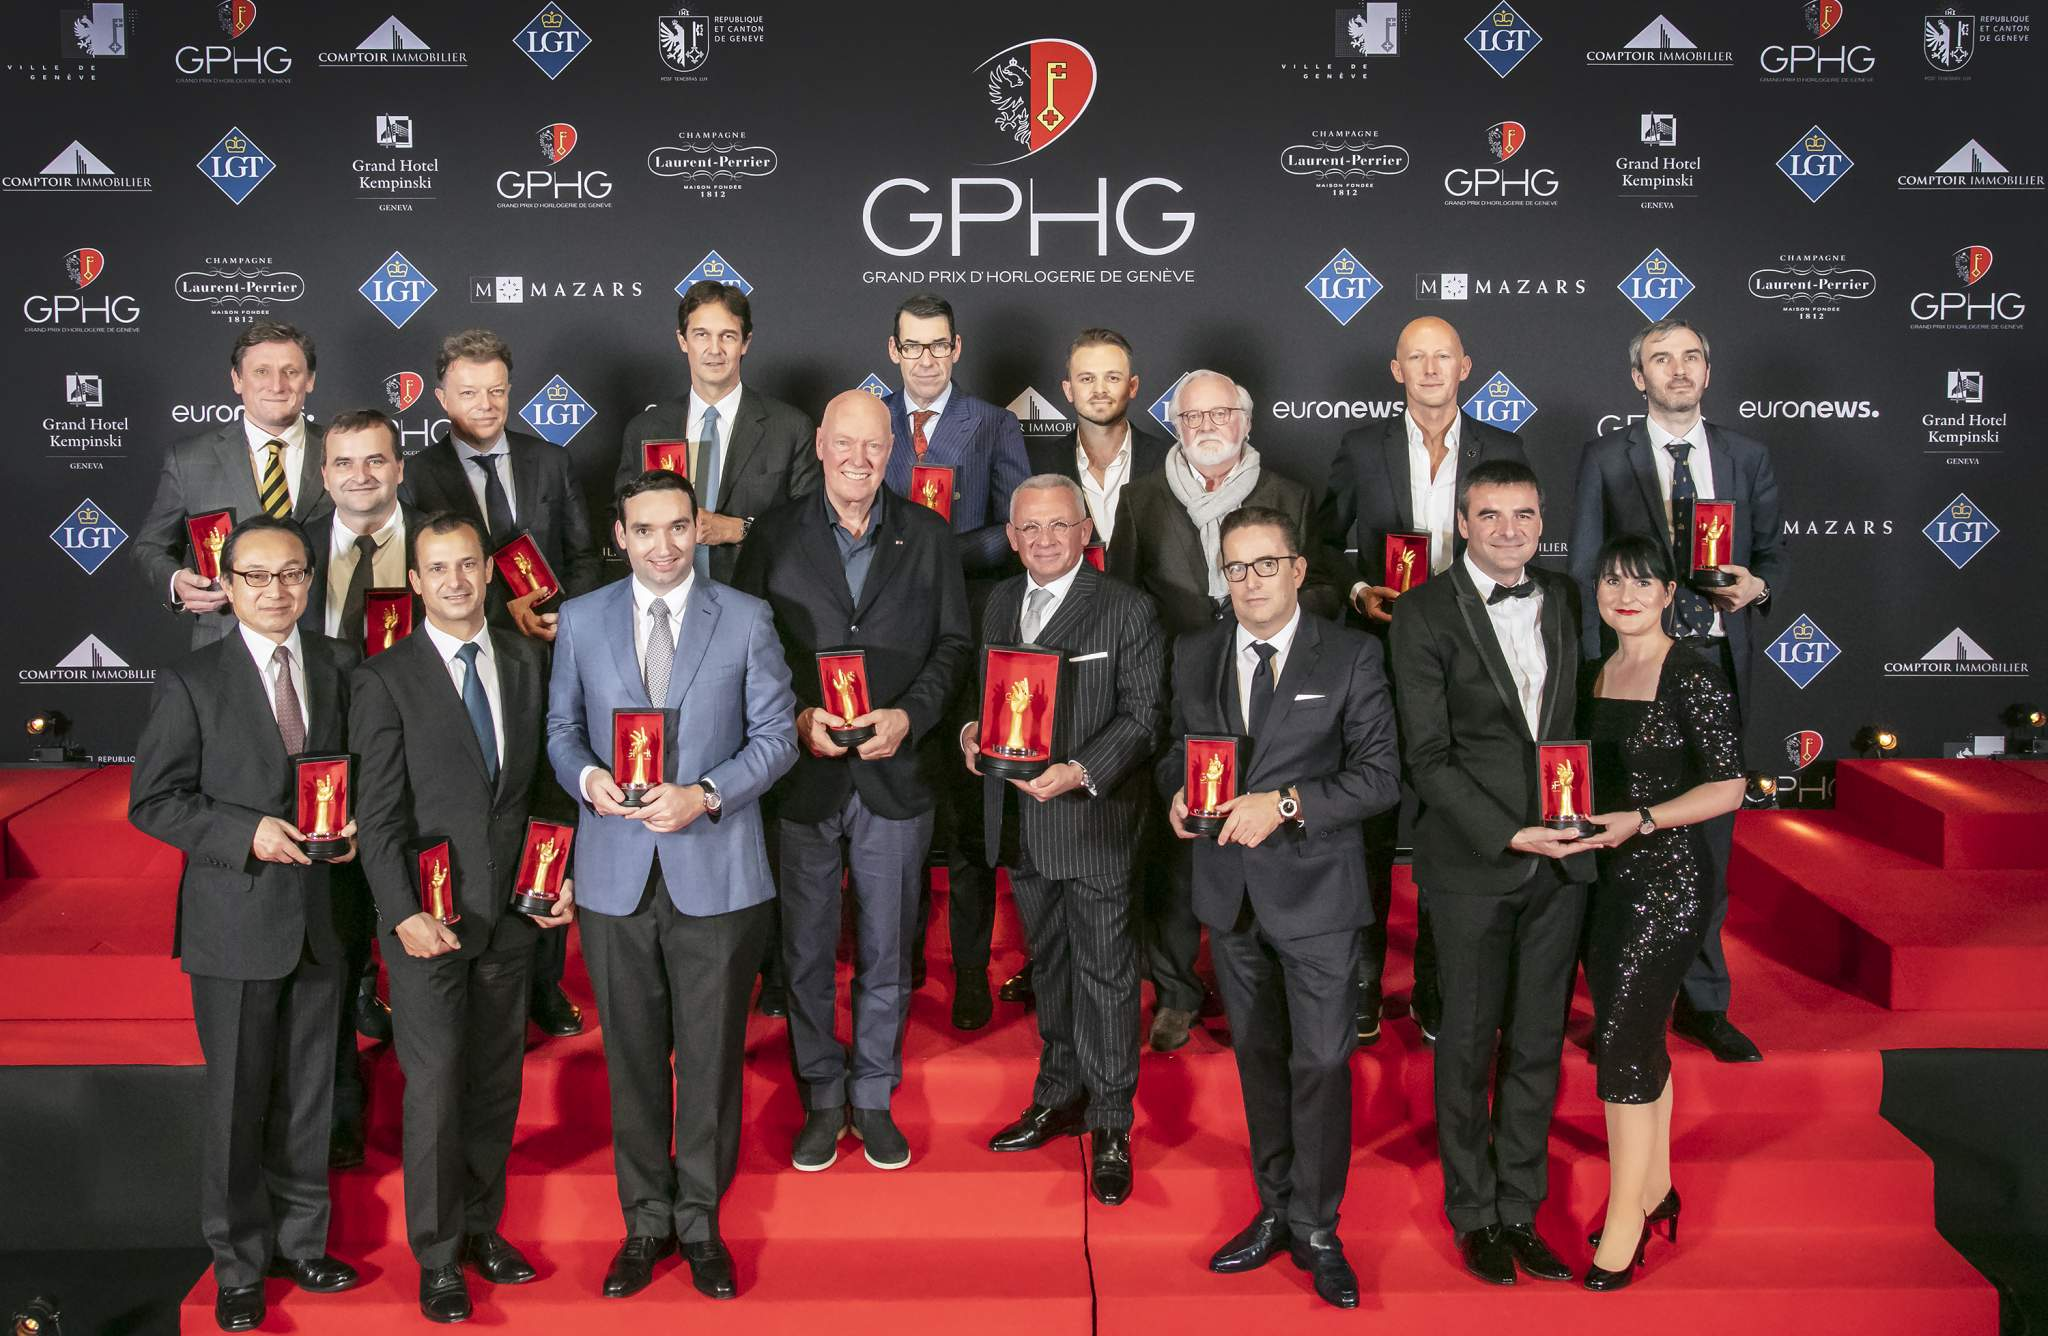 Pascal Raffy (Owner of Bovet 1822) Jean-Claude Biver (President non-executive of the LVMH Group Watch division, Chairman of Hublot & Zenith) Uwe Ahrendt (CEO of Nomos Glashütte) Maria & Richard Habring (CEOs and owners of Habring2) Atsushi Kaneko (Director of Seiko Watch Corporation) Rexhep Rexhepi (Watchmaker and Founder of Akrivia) Nicolas Beau (Directeur International Horlogerie et Joaillerie of Chanel) Eric de Rocquigny (Directeur International Operations & Métiers of Van Cleef & Arpels) Laurent Dordet (La Montre Hermès CEO) Laurent Ferrier (Founder) Marco Borraccino (Co-founder and CEO of Singer Reimagined) Pierre Jacques (President and CEO of De Bethune) Stephen Forsey (Co-founder of Greubel Forsey) Konstantin Chaykin (Founder) Rémi Maillat (Founder of Krayon) Christian Selmoni (Style and Heritage Director at Vacheron Constantin )